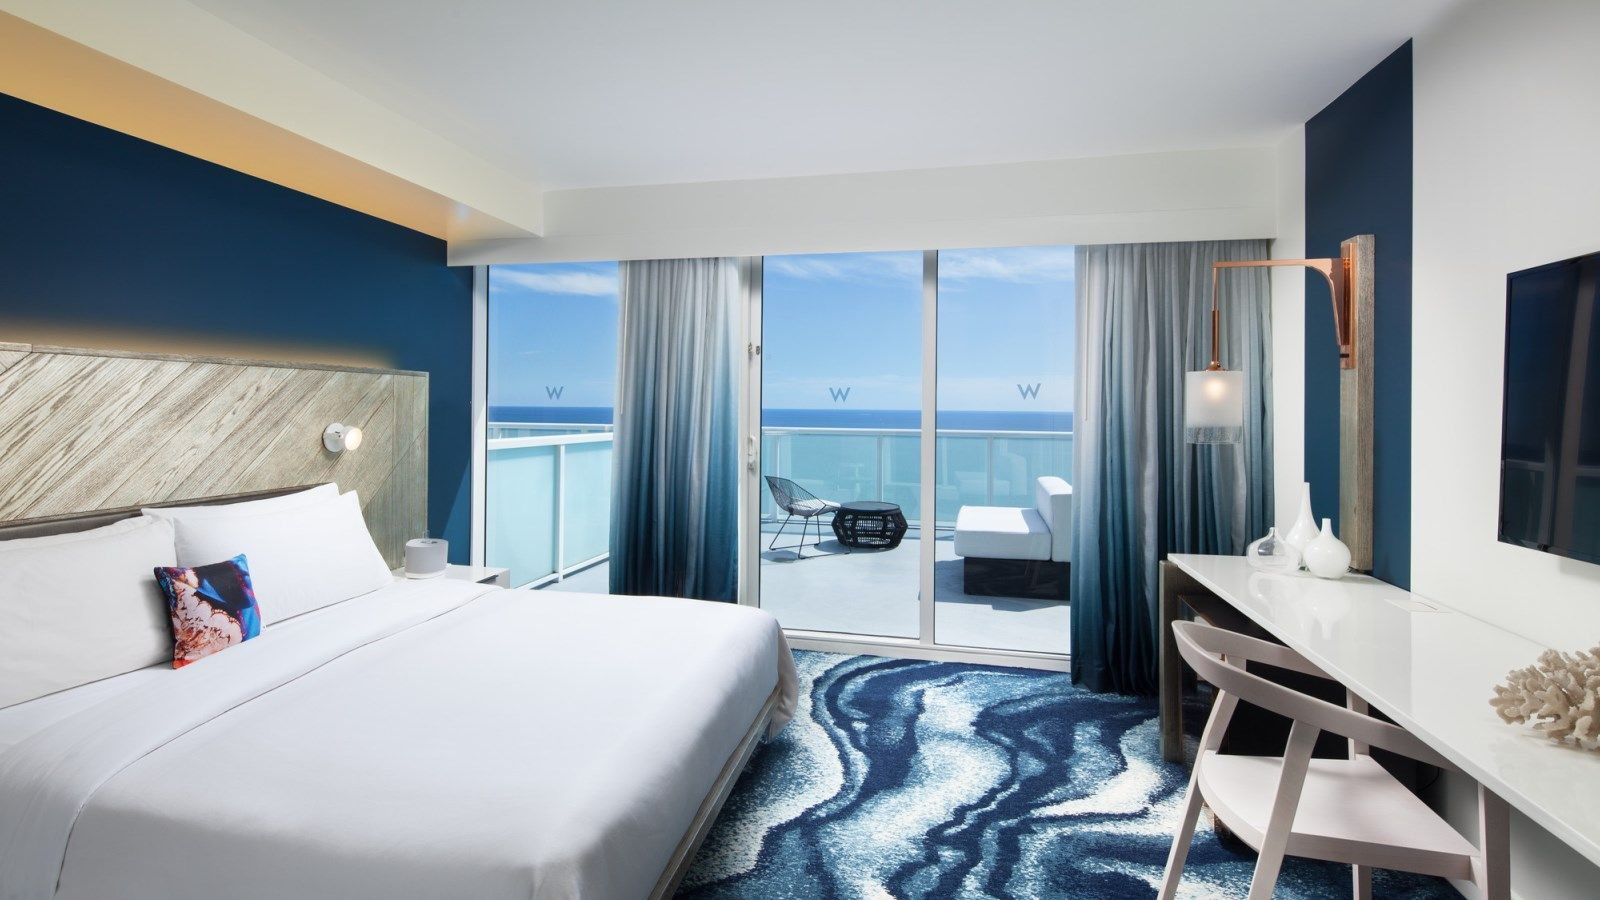 Starwood Suites W Fort Lauderdale